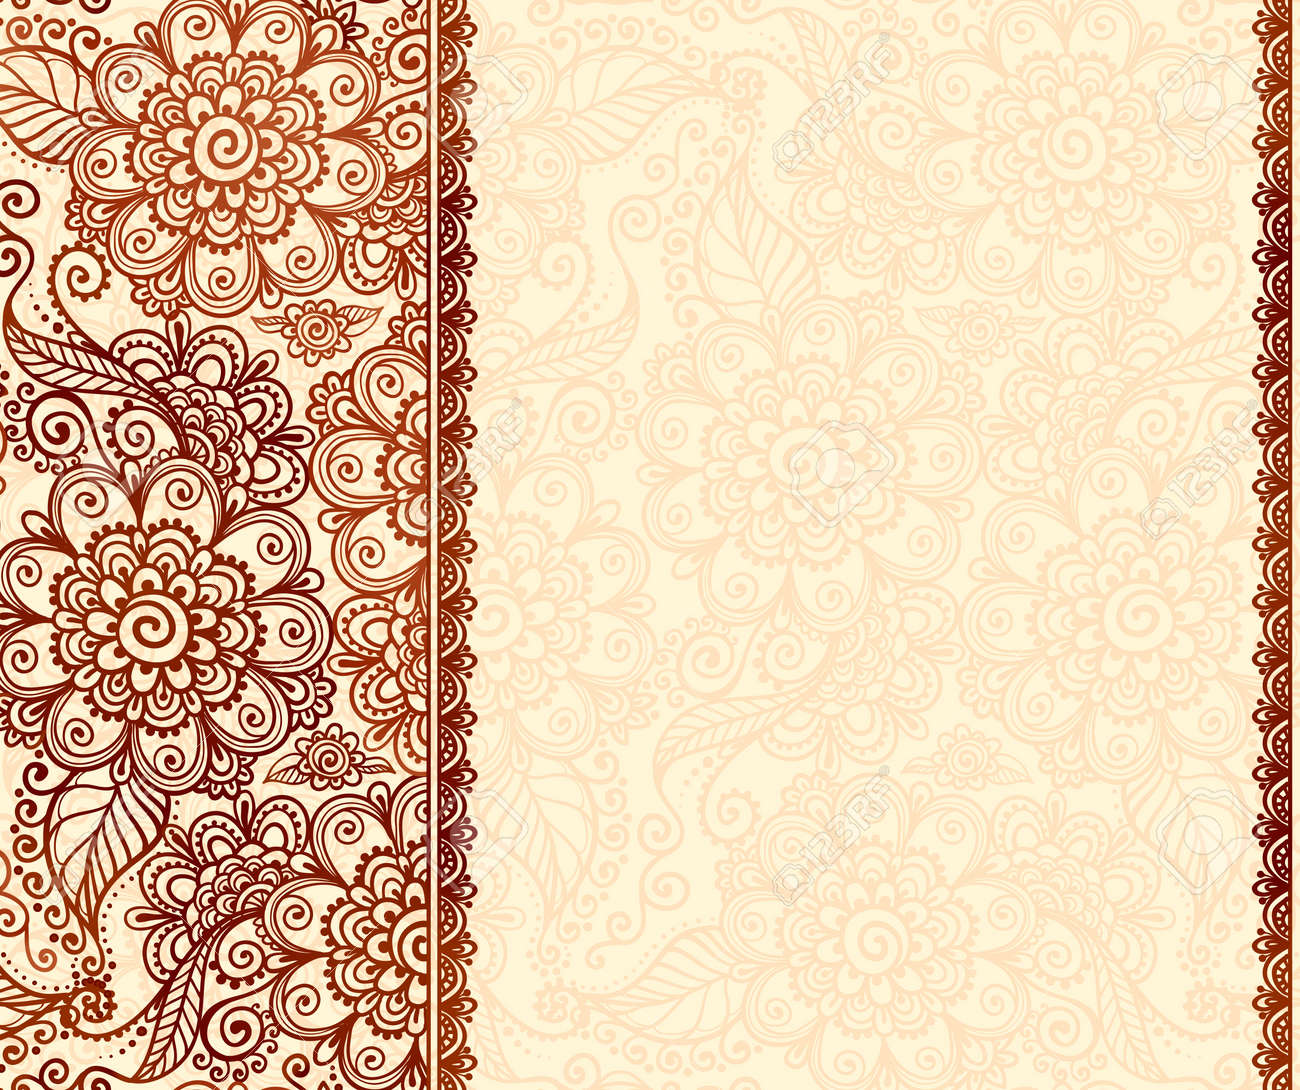 Vintage Henna Tatto Mehndi Flowers Vector Background Royalty Free